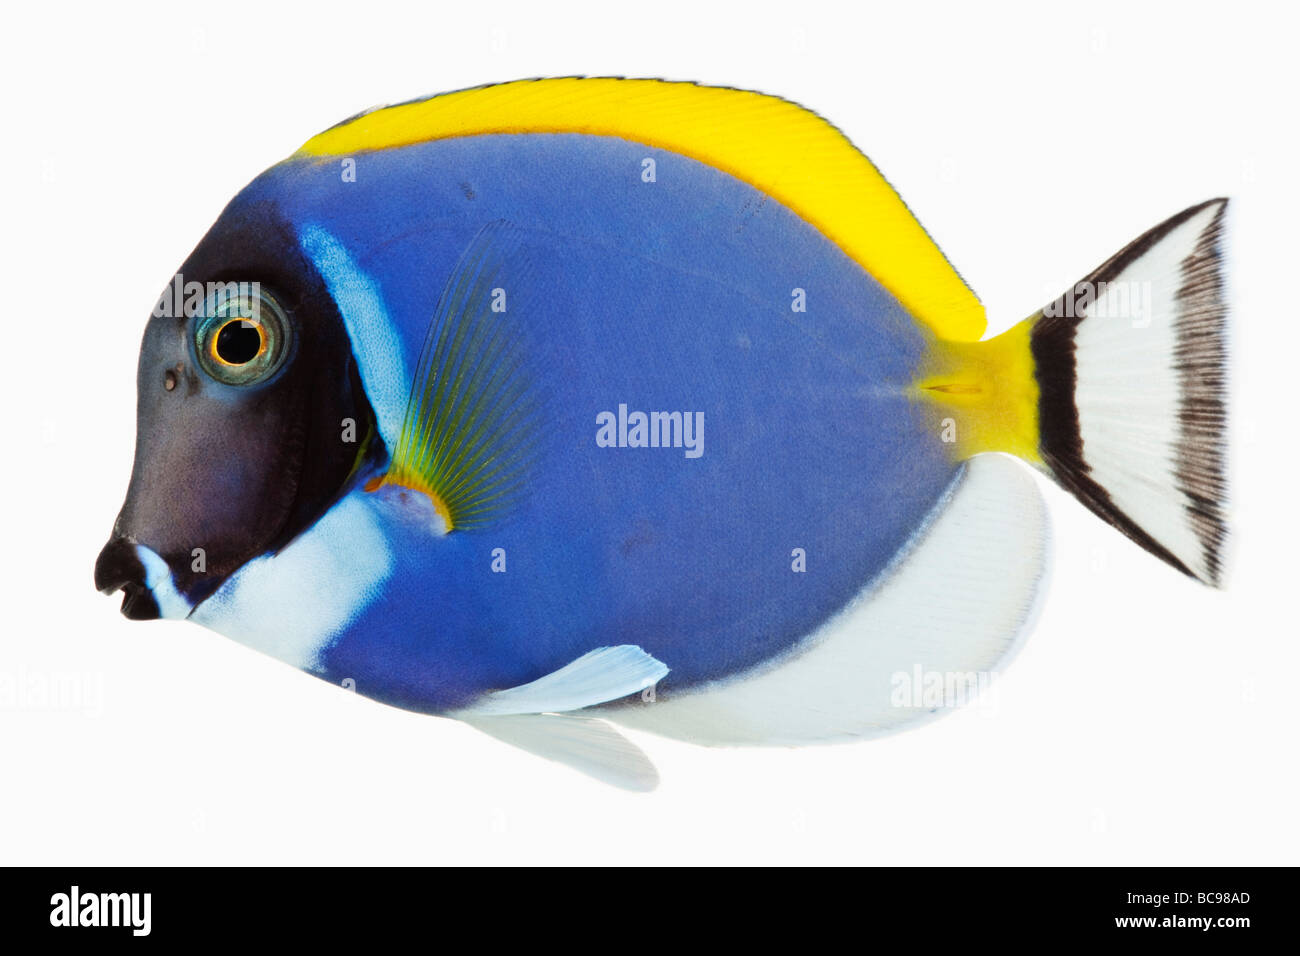 Powder blue tang Powder Blue Surgeon Fish Herbivorous tropical marine reef fish Dist Tropical Indo Pacific Studio - Stock Image